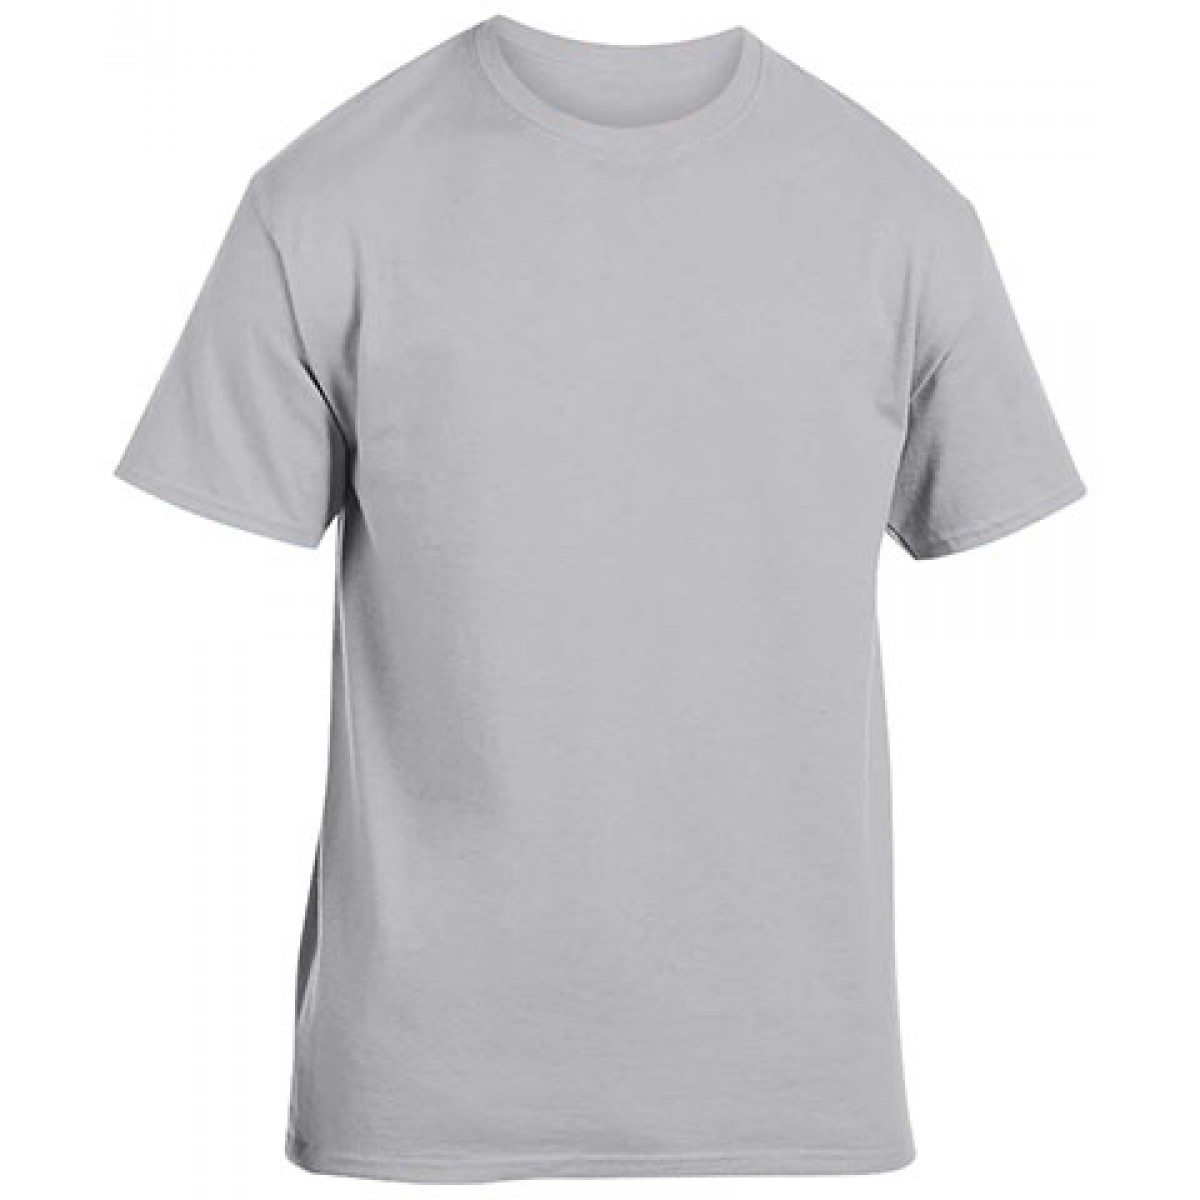 Heavy Cotton Activewear T-Shirt-Ash Gray-L